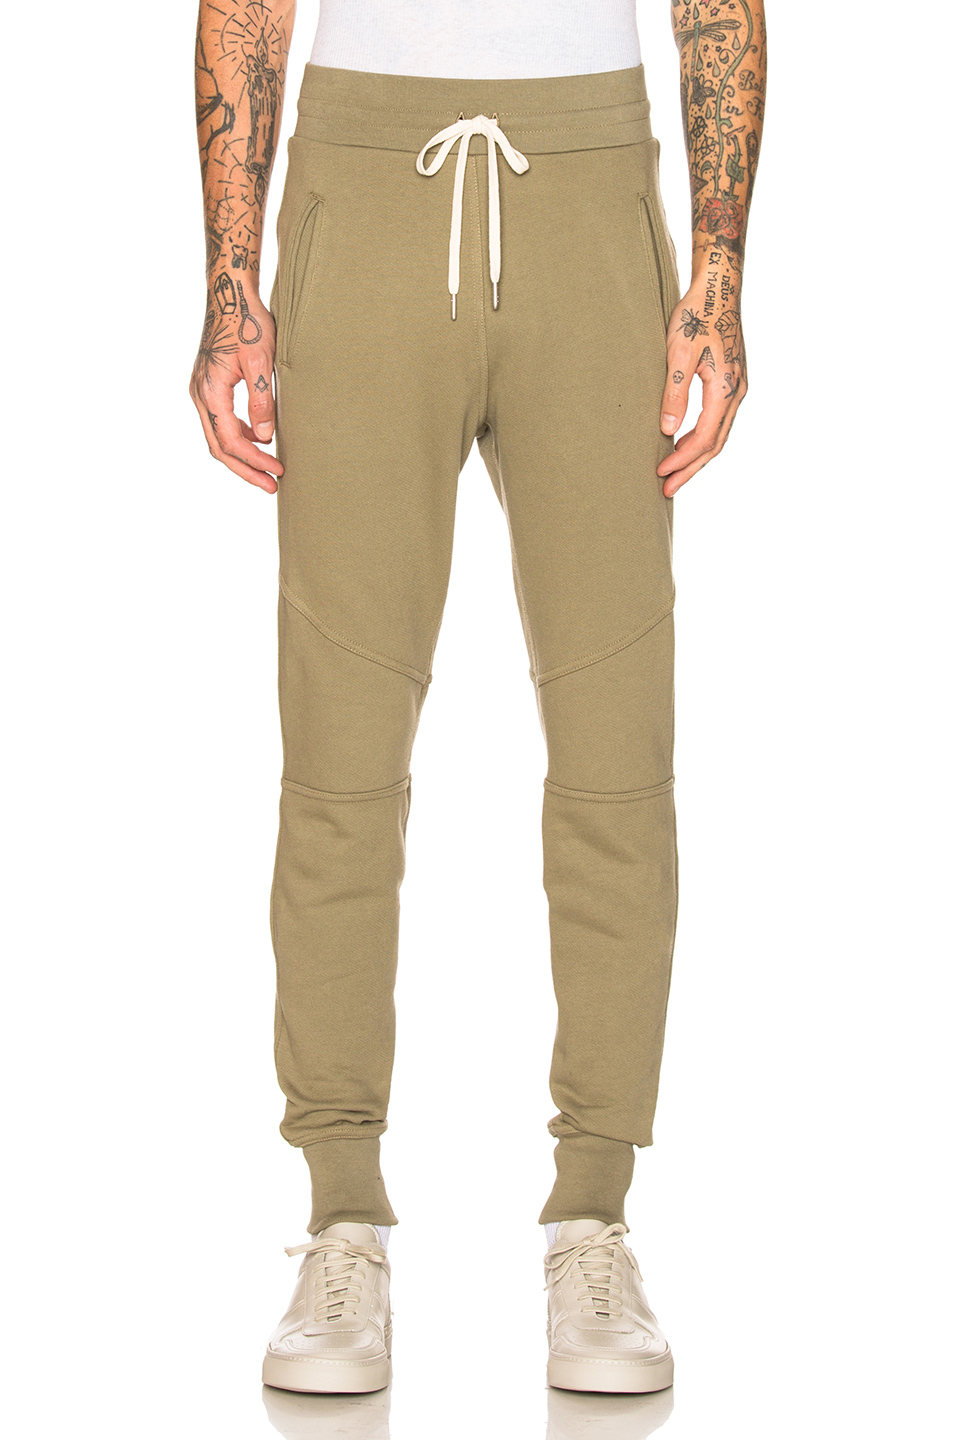 limited quantity great deals new products for Escobar Sweatpants, JOHN ELLIOTT